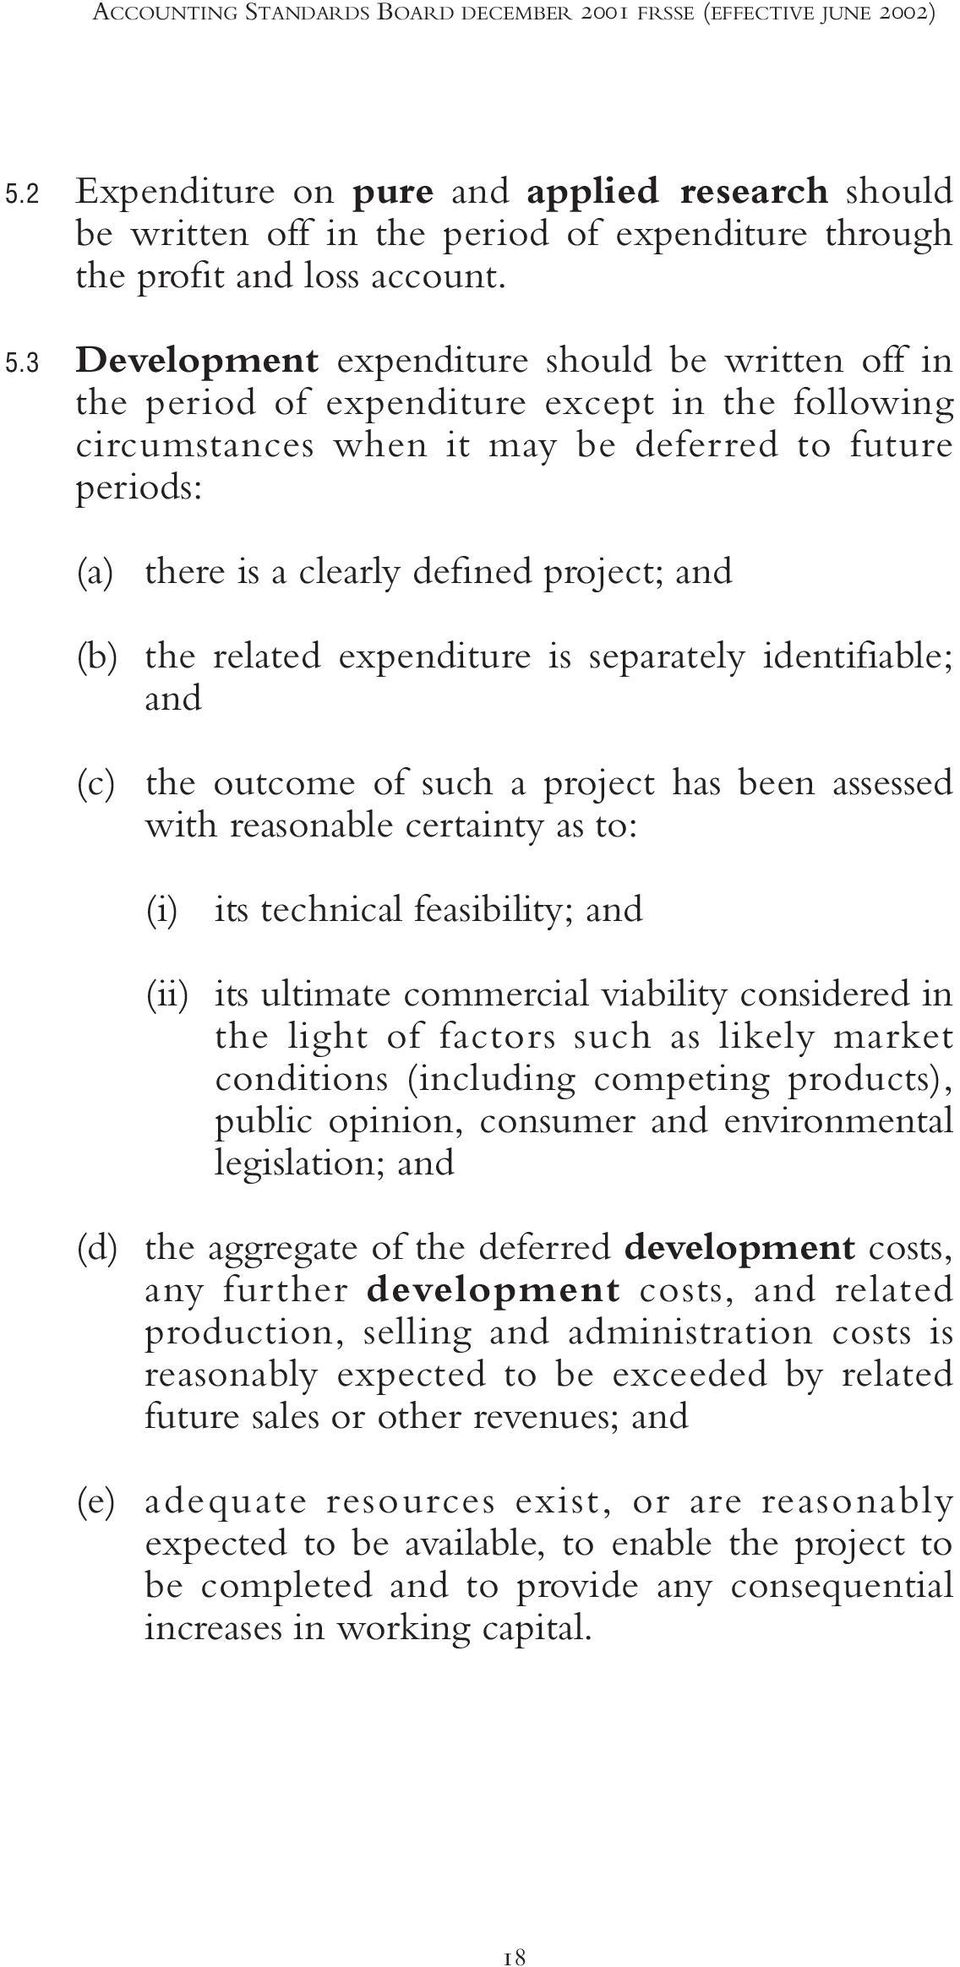 (b) the related expenditure is separately identifiable; and (c) the outcome of such a project has been assessed with reasonable certainty as to: (i) its technical feasibility; and (ii) its ultimate